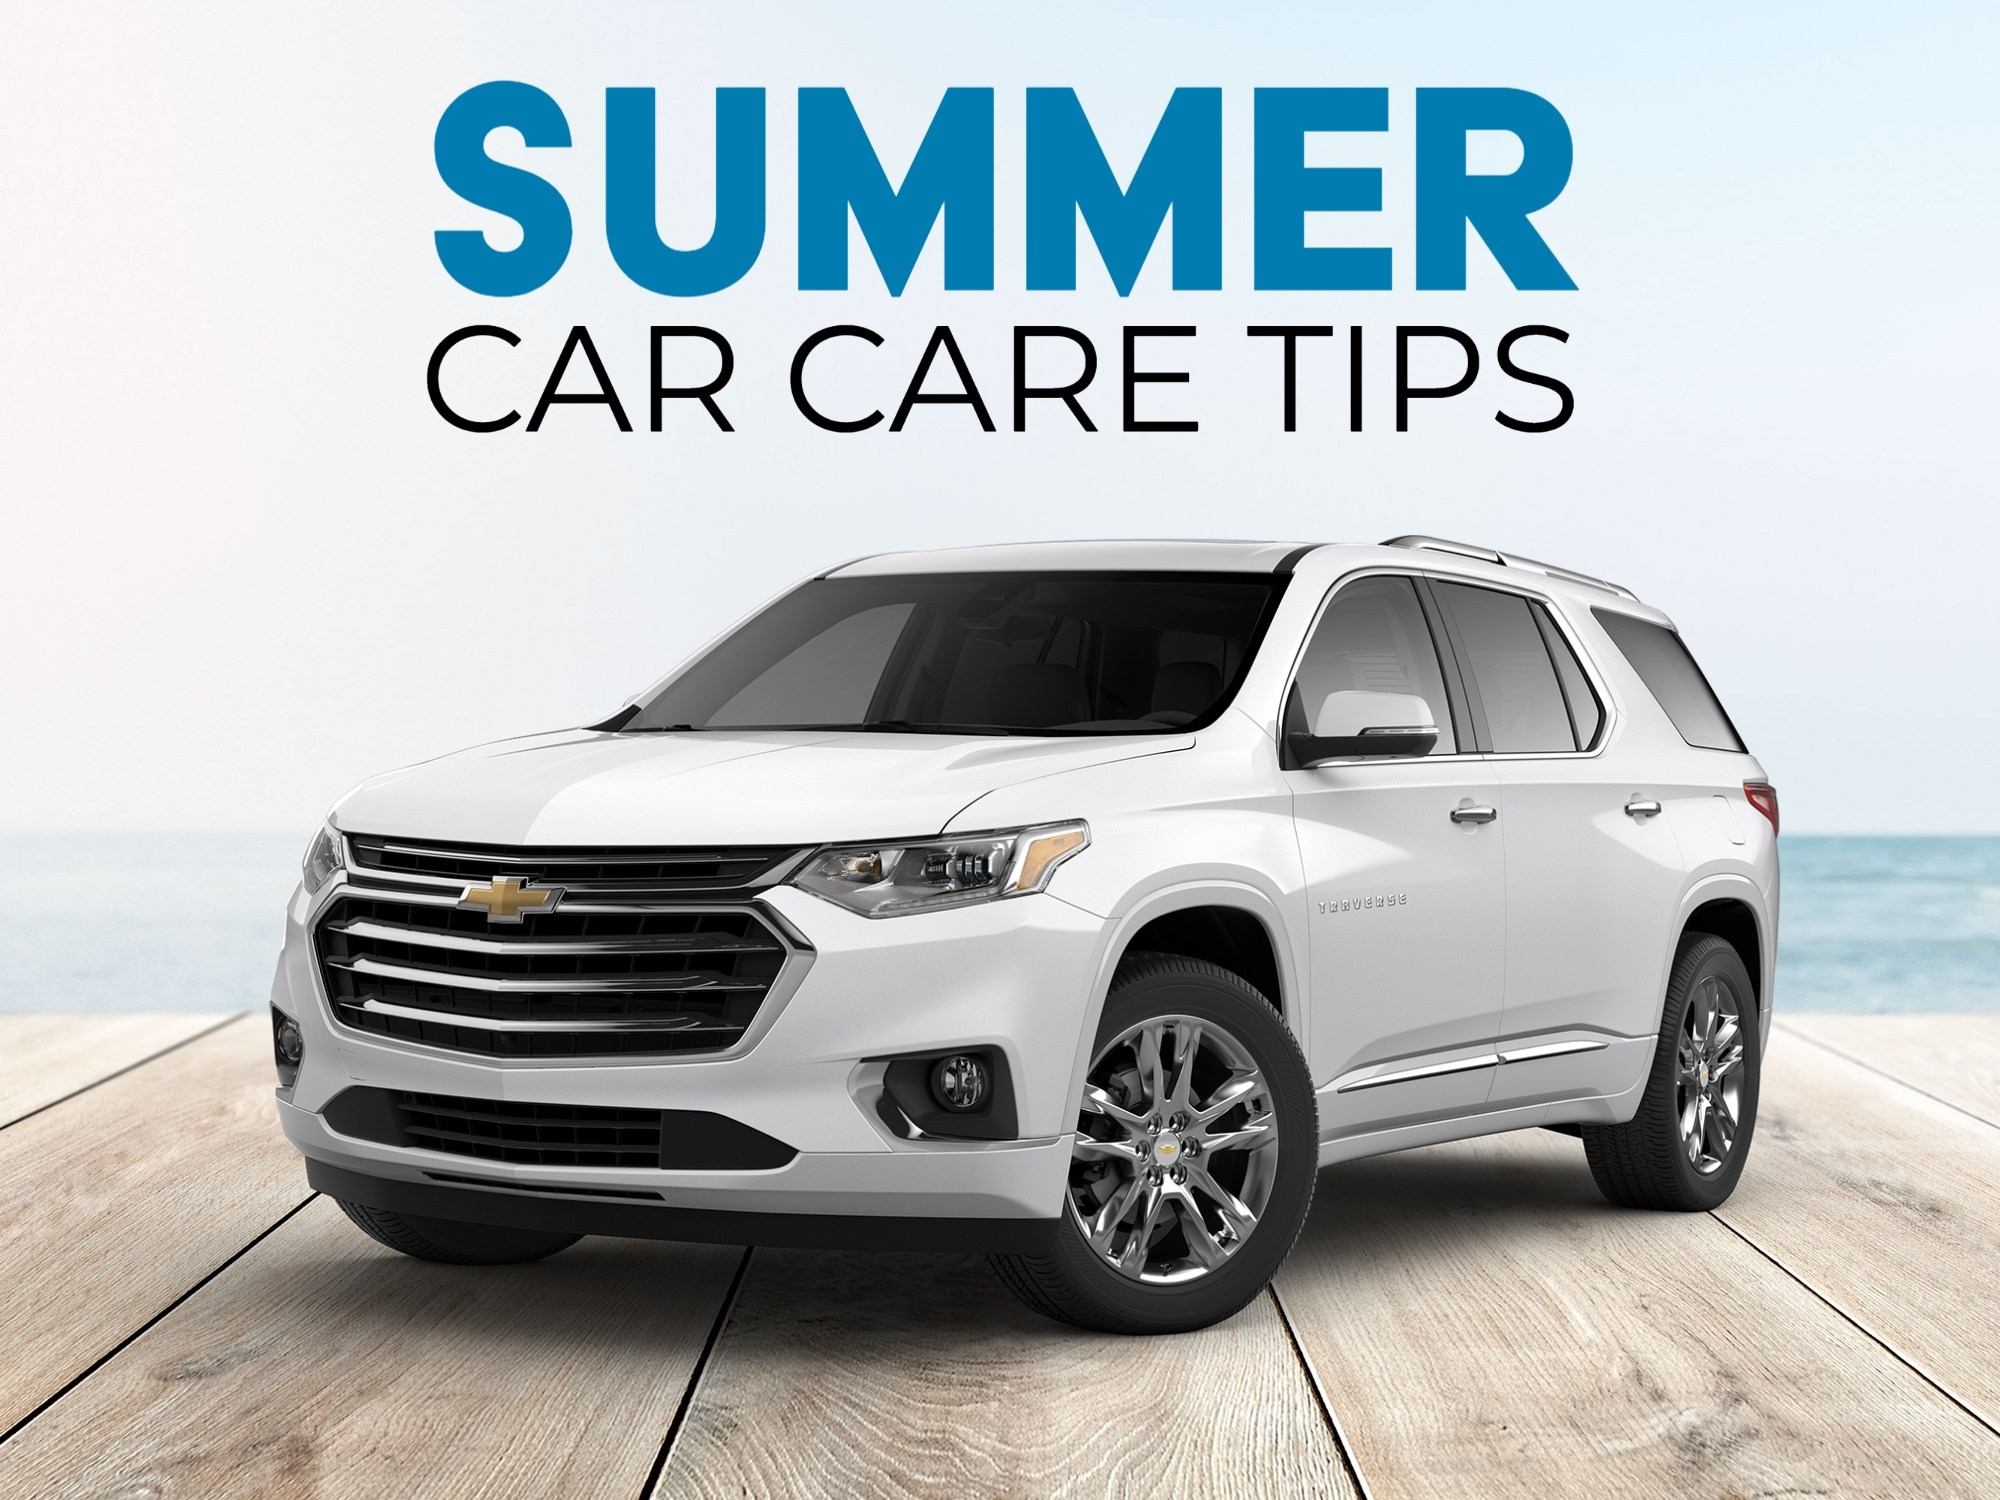 White Chevrolet Traverse parked on boardwalk with sea background